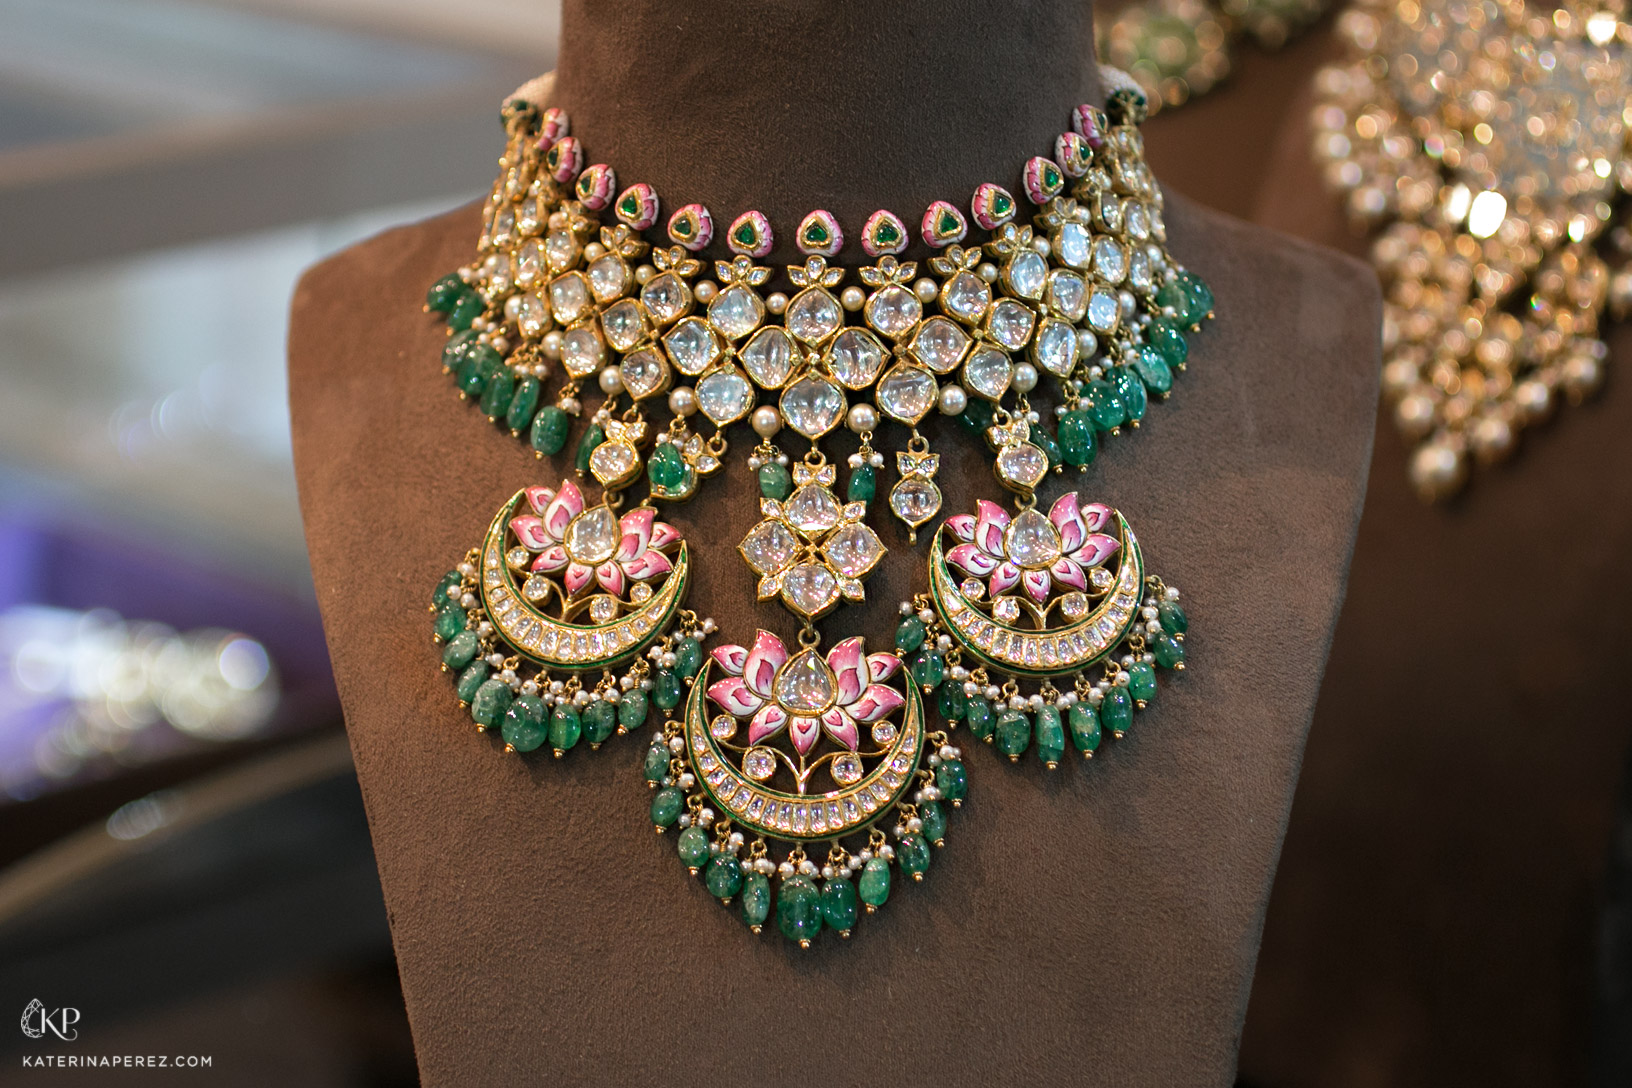 Sunita Shekhawat Padmapriya necklace with lotus flowers motifs